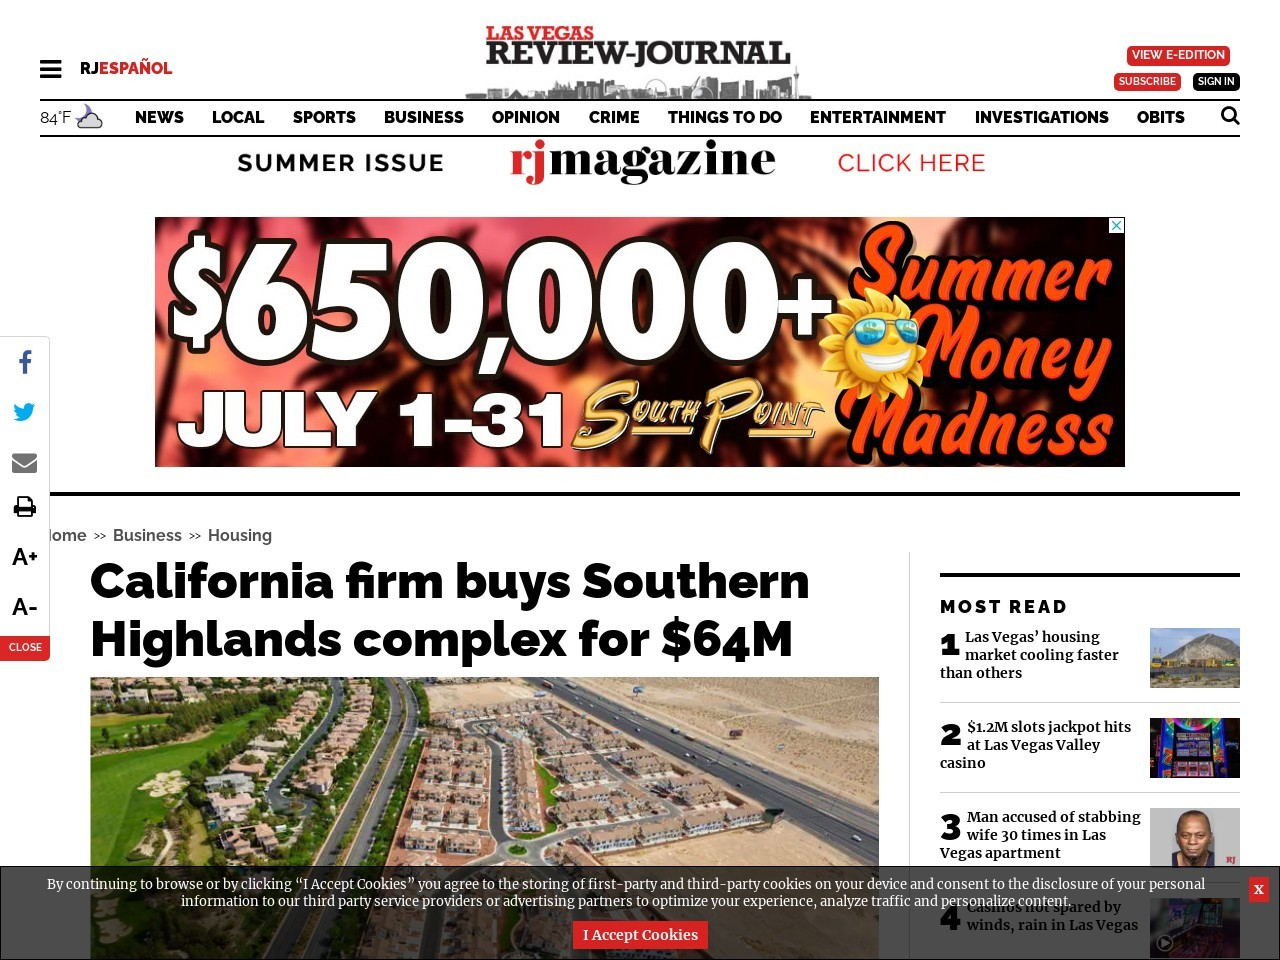 California firm buys a Southern Highlands complex for $64M